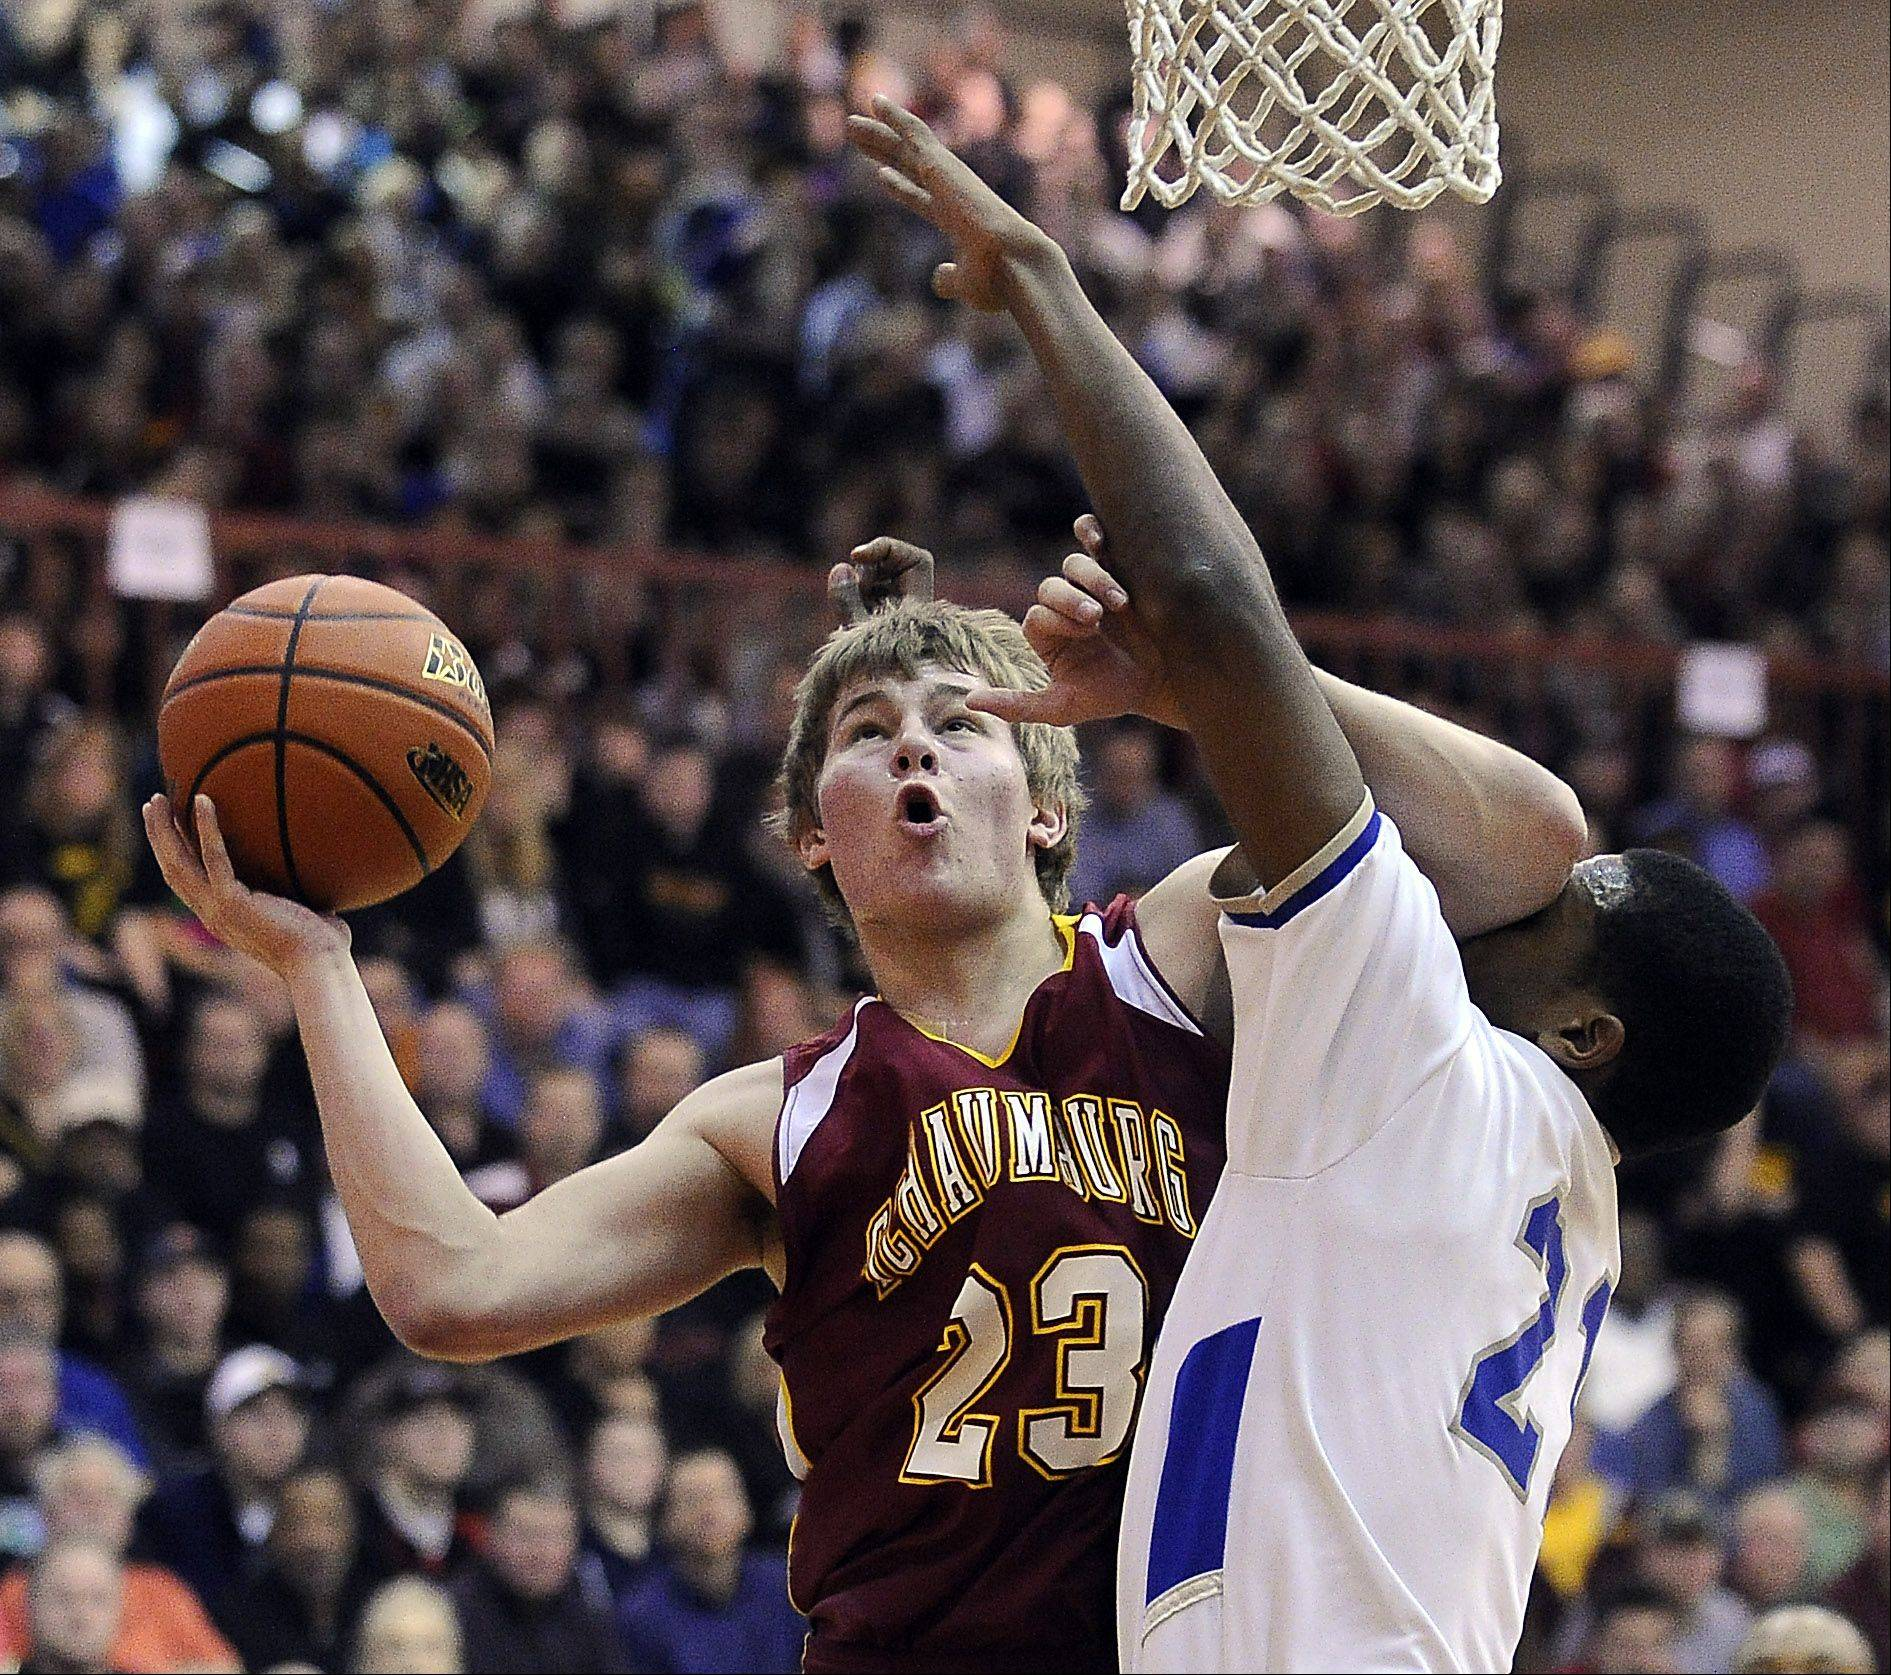 Images: Schaumburg vs. Proviso East boys basketball